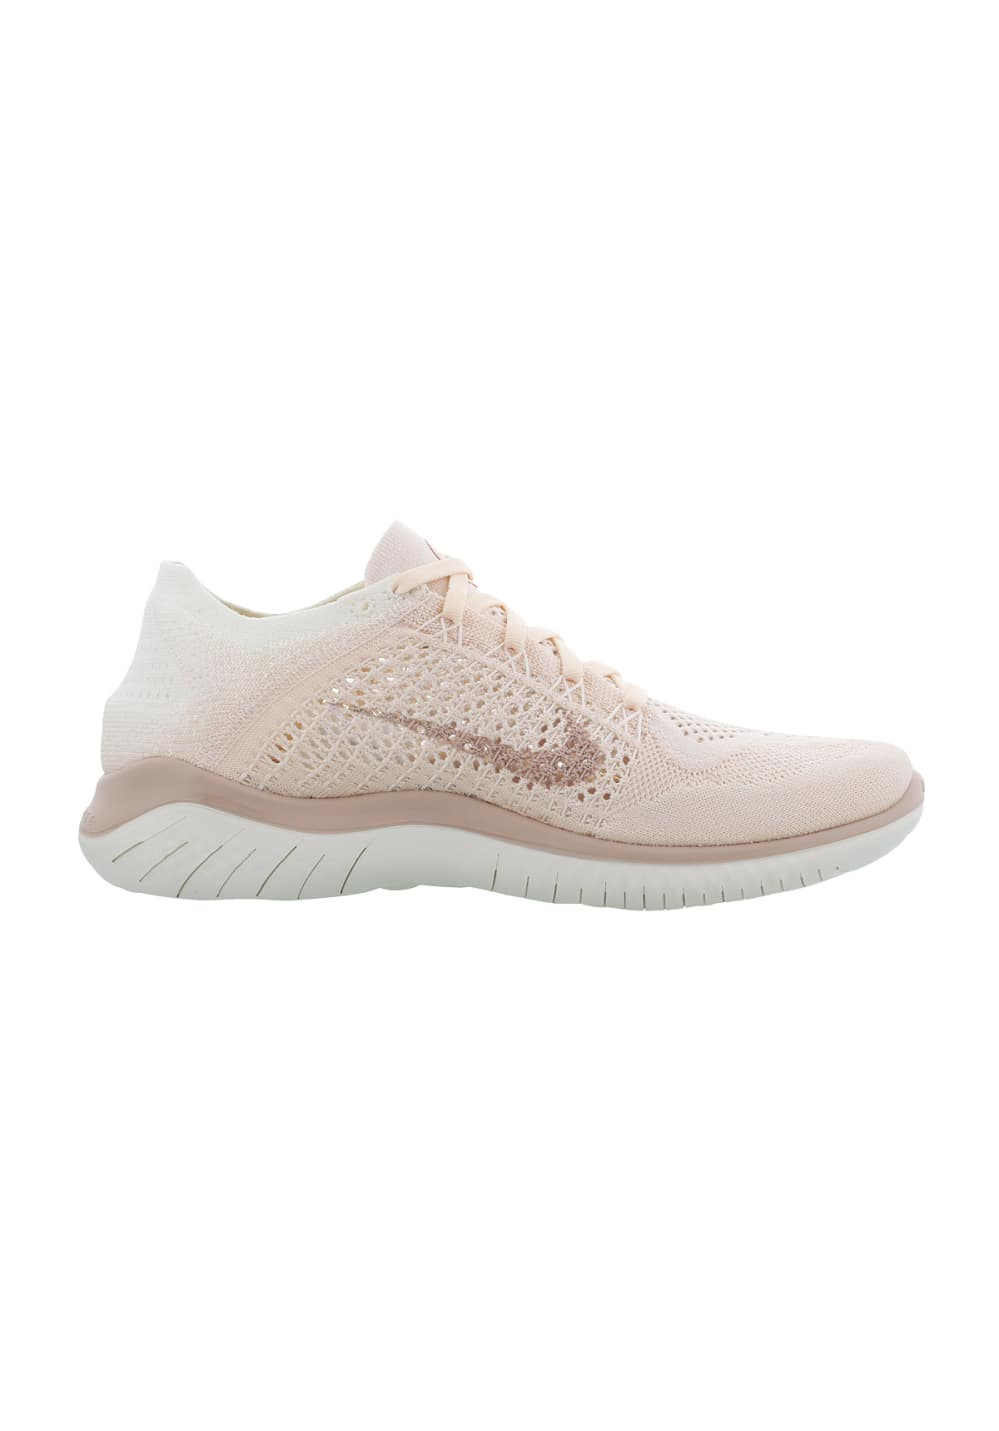 0680b44155c0 Next. -50%. This product is currently out of stock. Nike. Free RN Flyknit  2018 - Running shoes ...